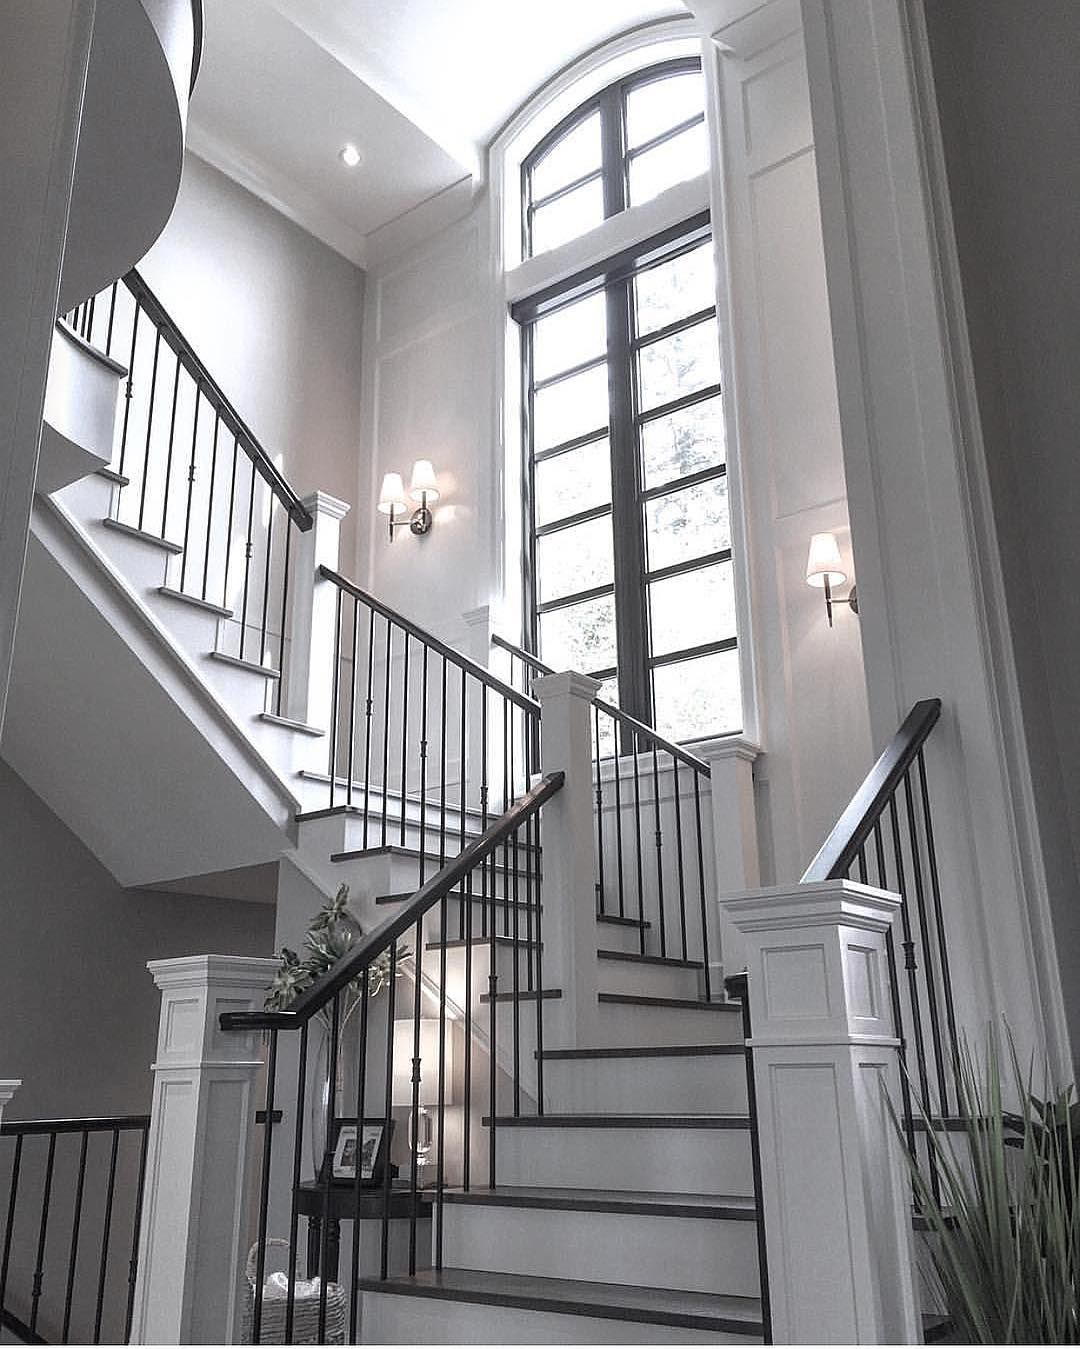 16 Elegant Traditional Staircase Designs That Will Amaze You: House Design, House, Staircase Design